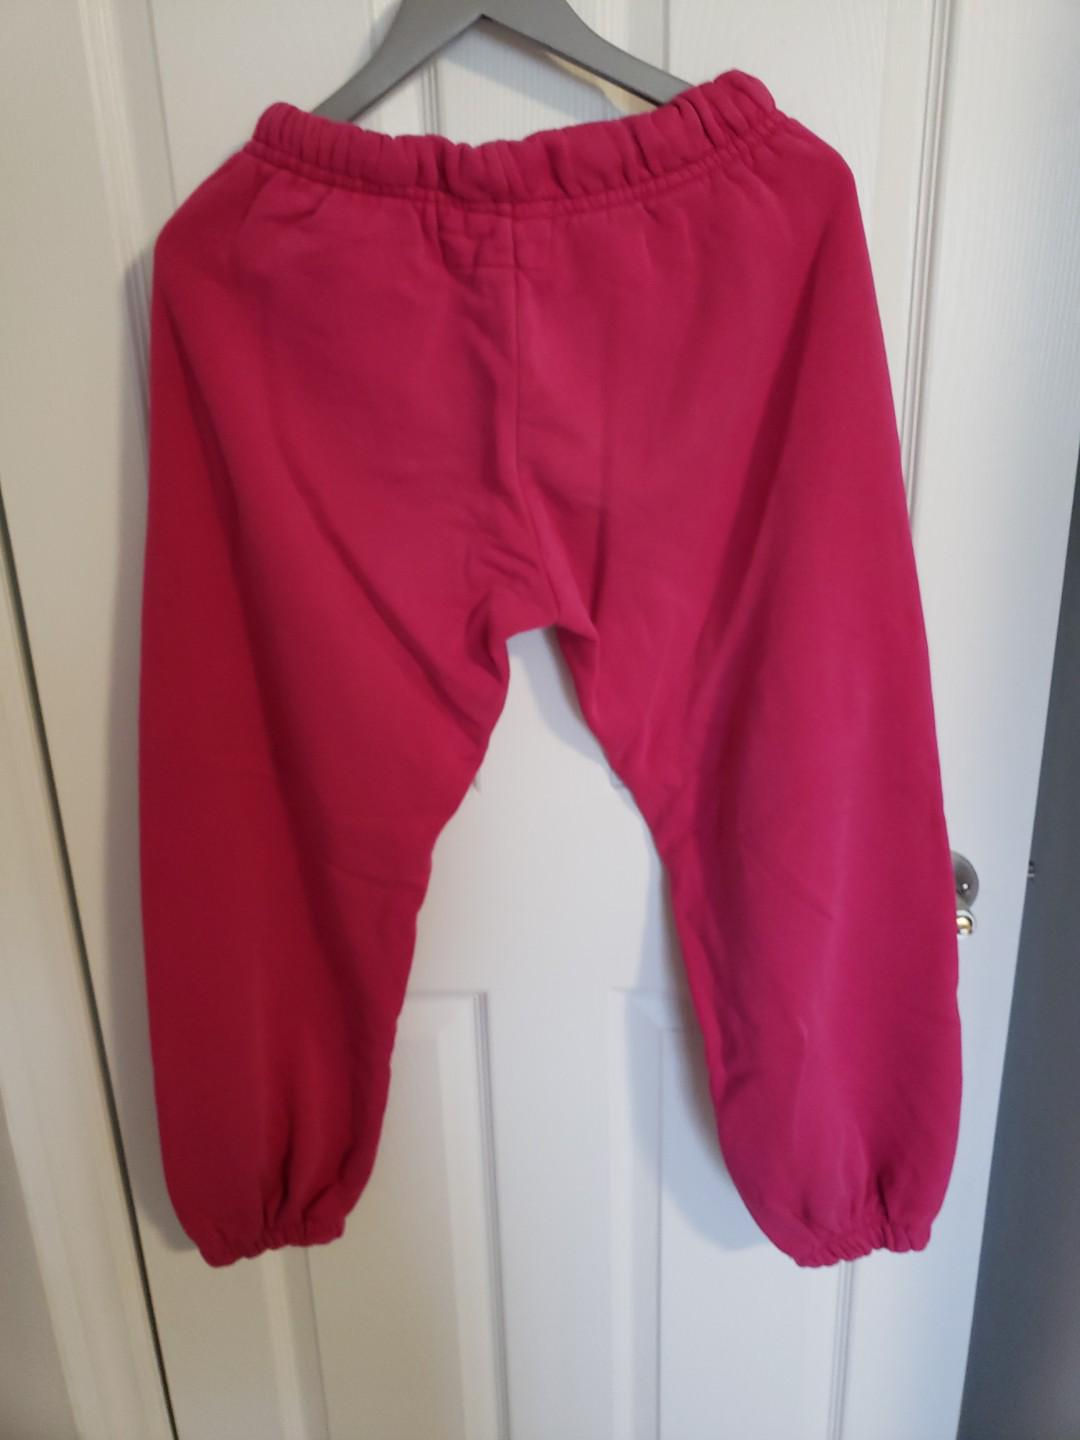 Lazy pants size S